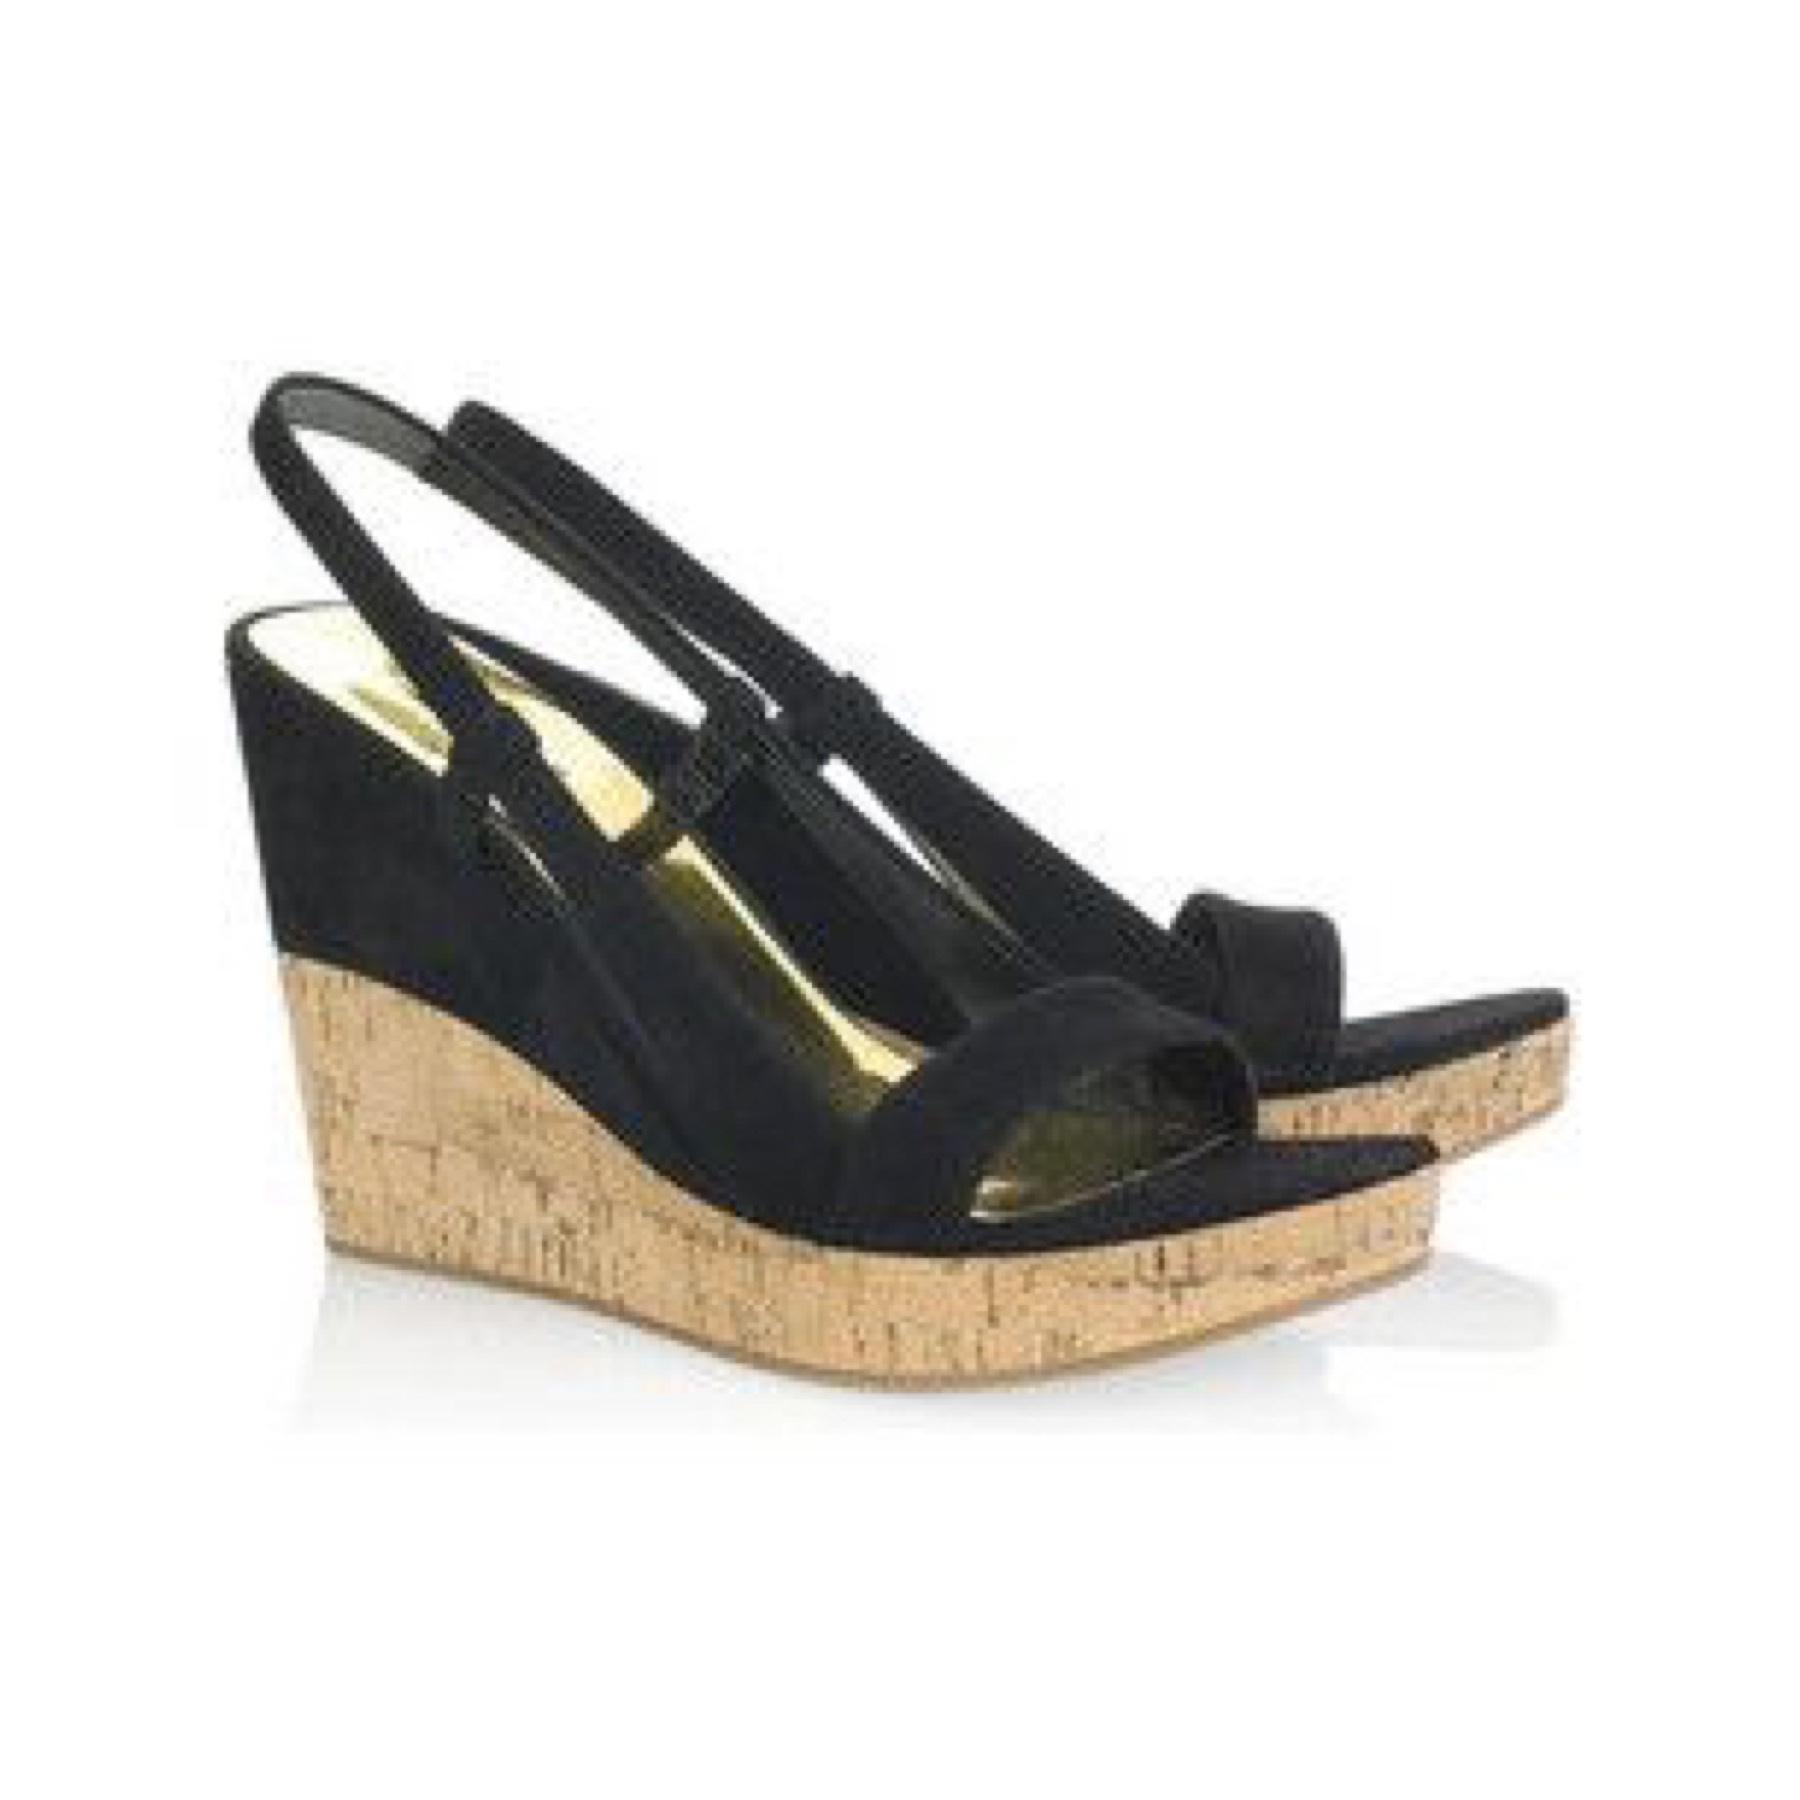 8b09a286cca6 Miu Miu Miu Miu Black Cork Wedge Sandals Size US 5.5 Regular (M